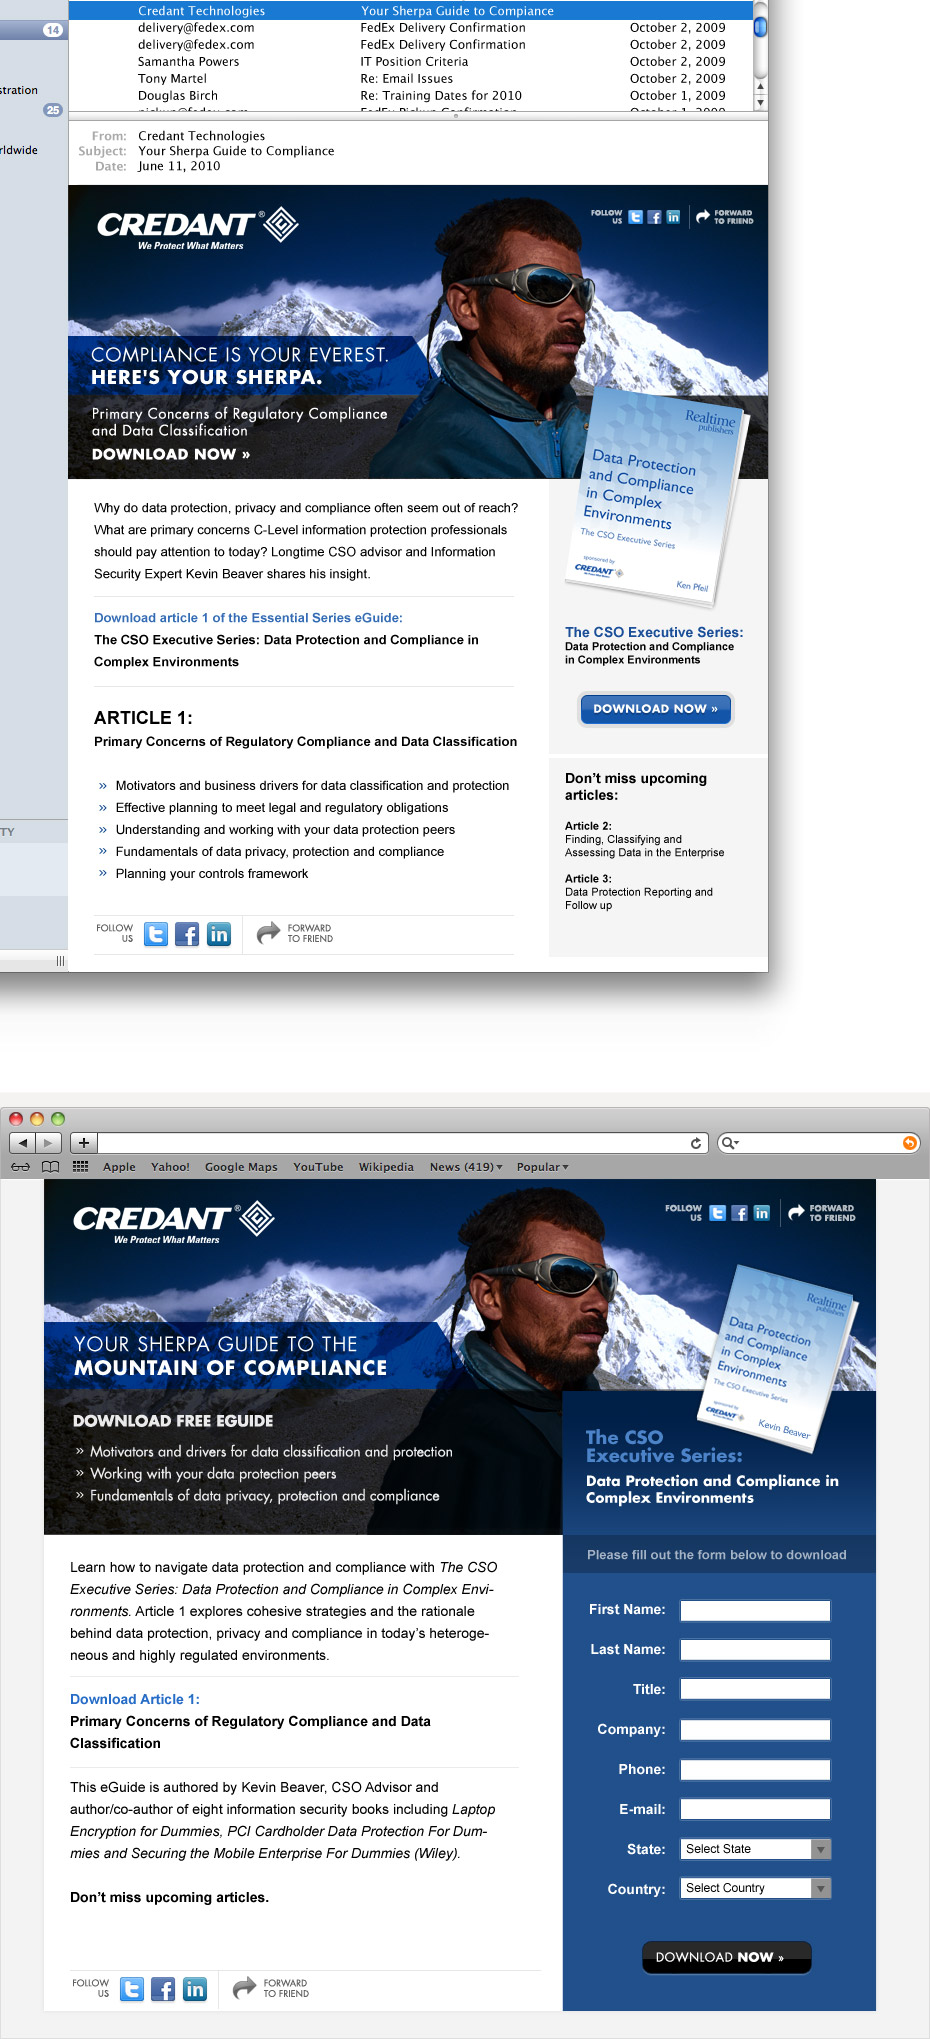 Credant Compliance Campaign Email & Landing Page